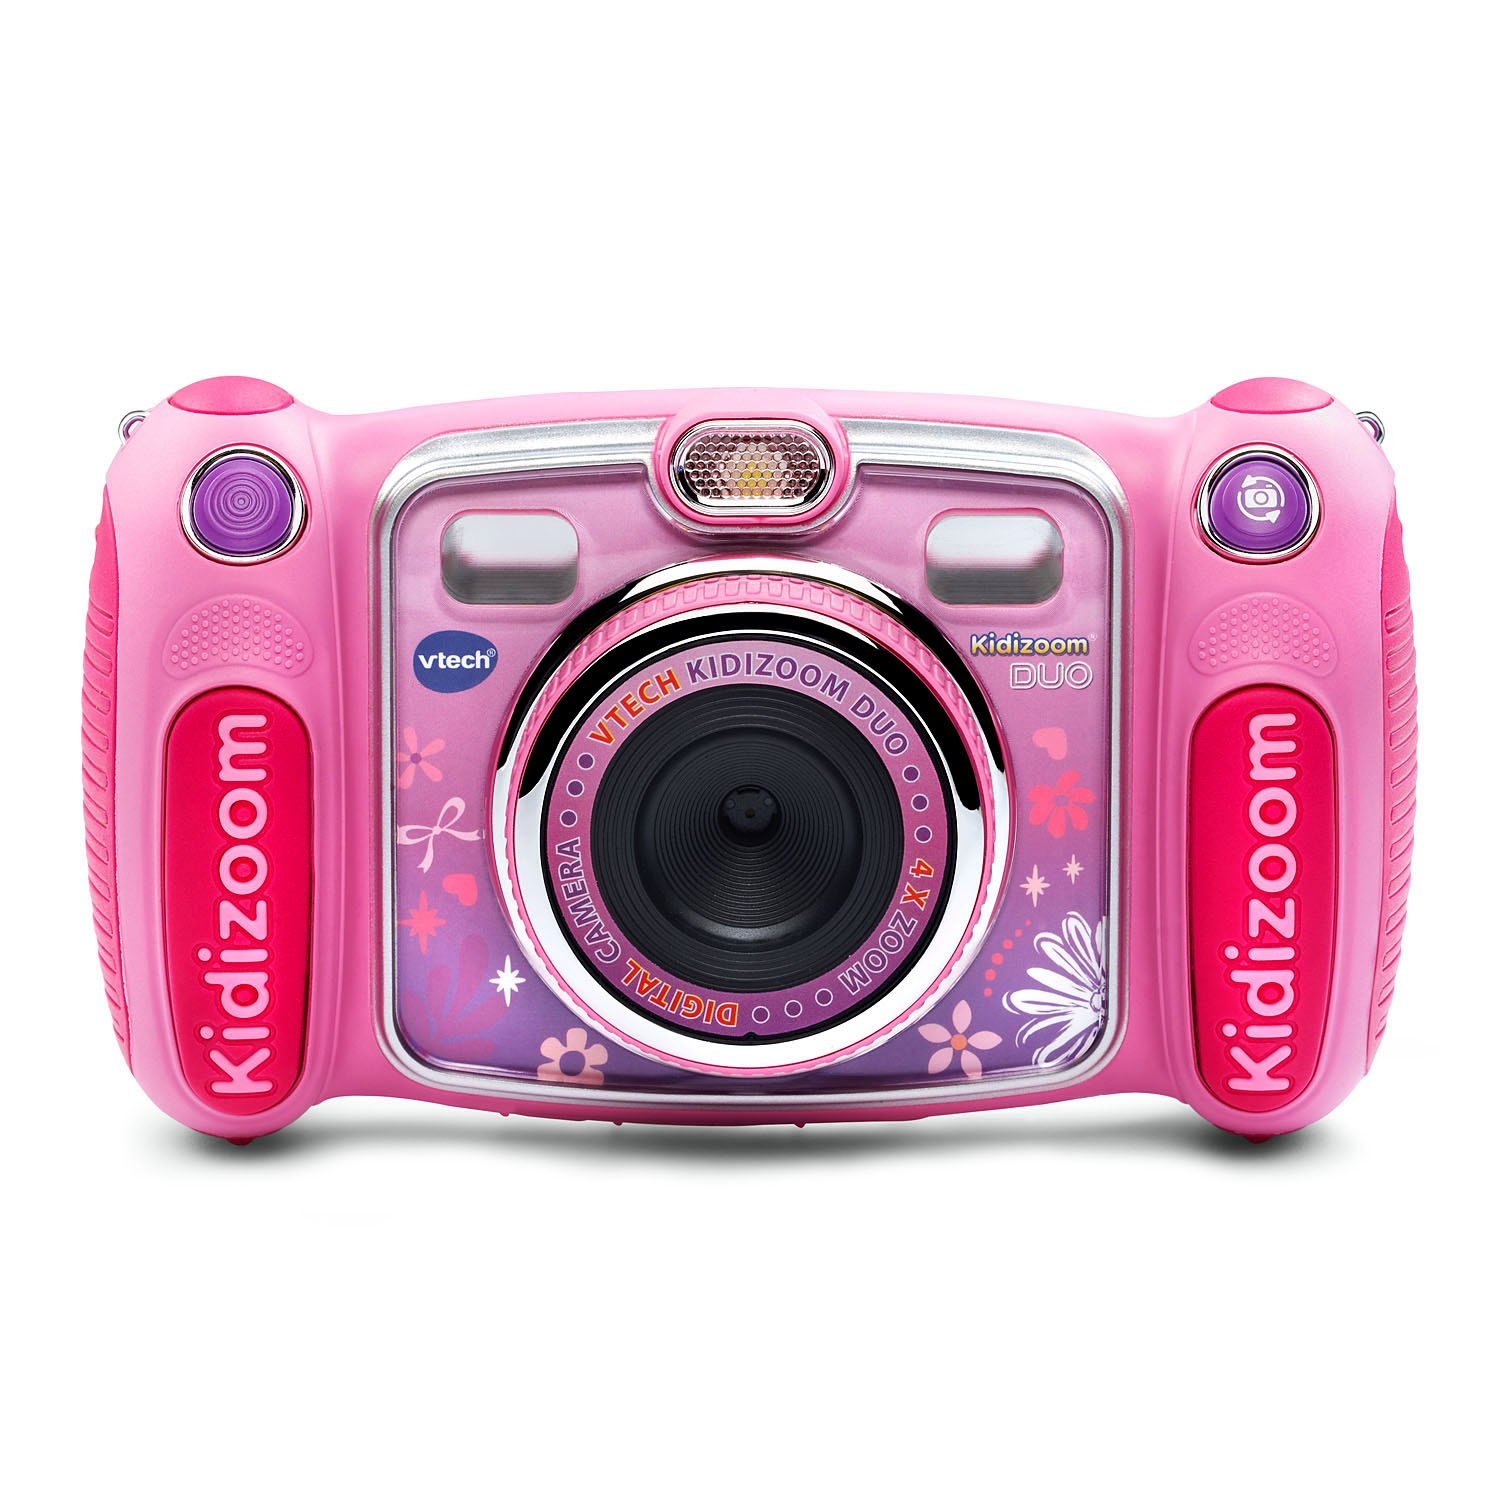 Best camera's for every age, digital cameras for little kids, digital cameras for tweens, digital cameras for teenagers, digital cameras for adults, what camera to buy, best camera for kids, vtech kids camera, best camera for child photography, what camera should i buy, best camera for photography, best camera for photography beginners, best camera for moms, what camera should i buy quiz, photos by ariel, momtography 101, photography class, photography tips, how to use dslr camera